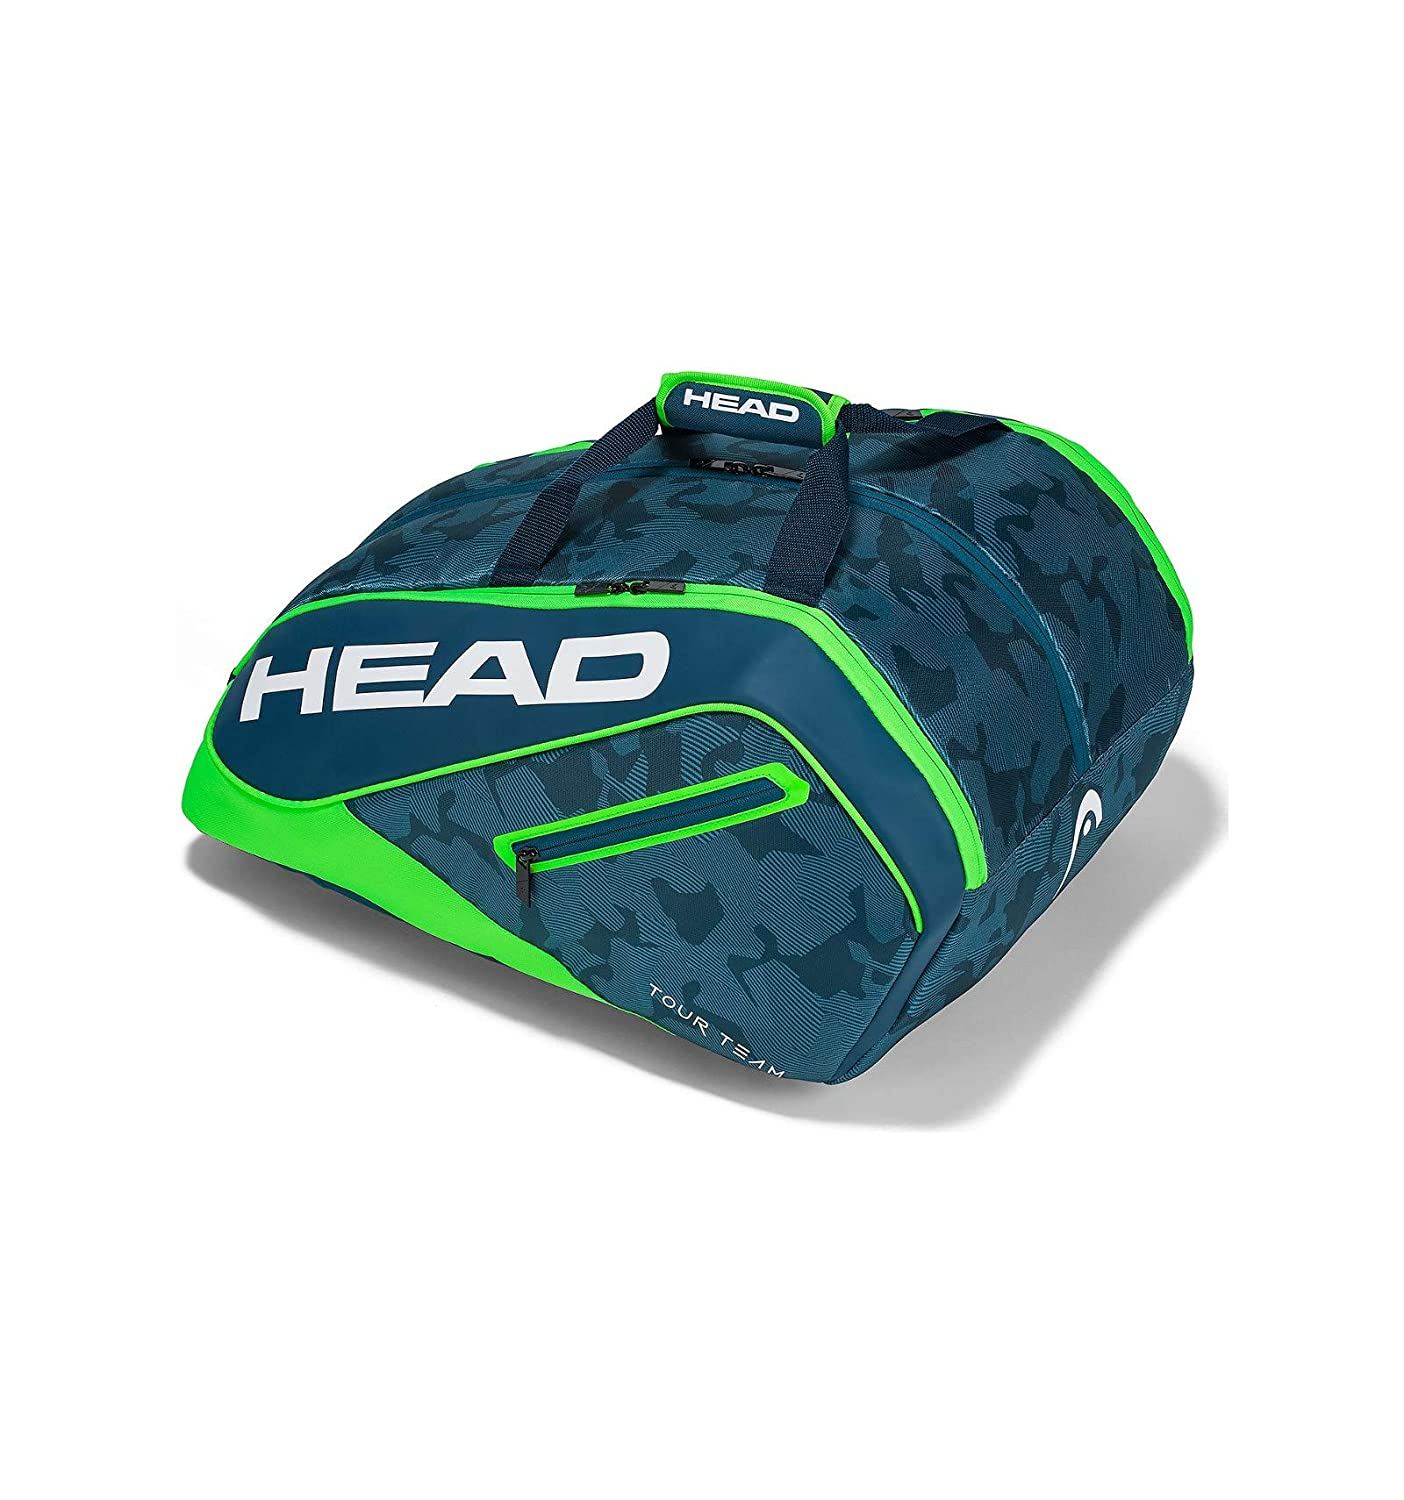 Head Tour Team Padel Paletero de Tenis, Blanco, S: Amazon.es ...